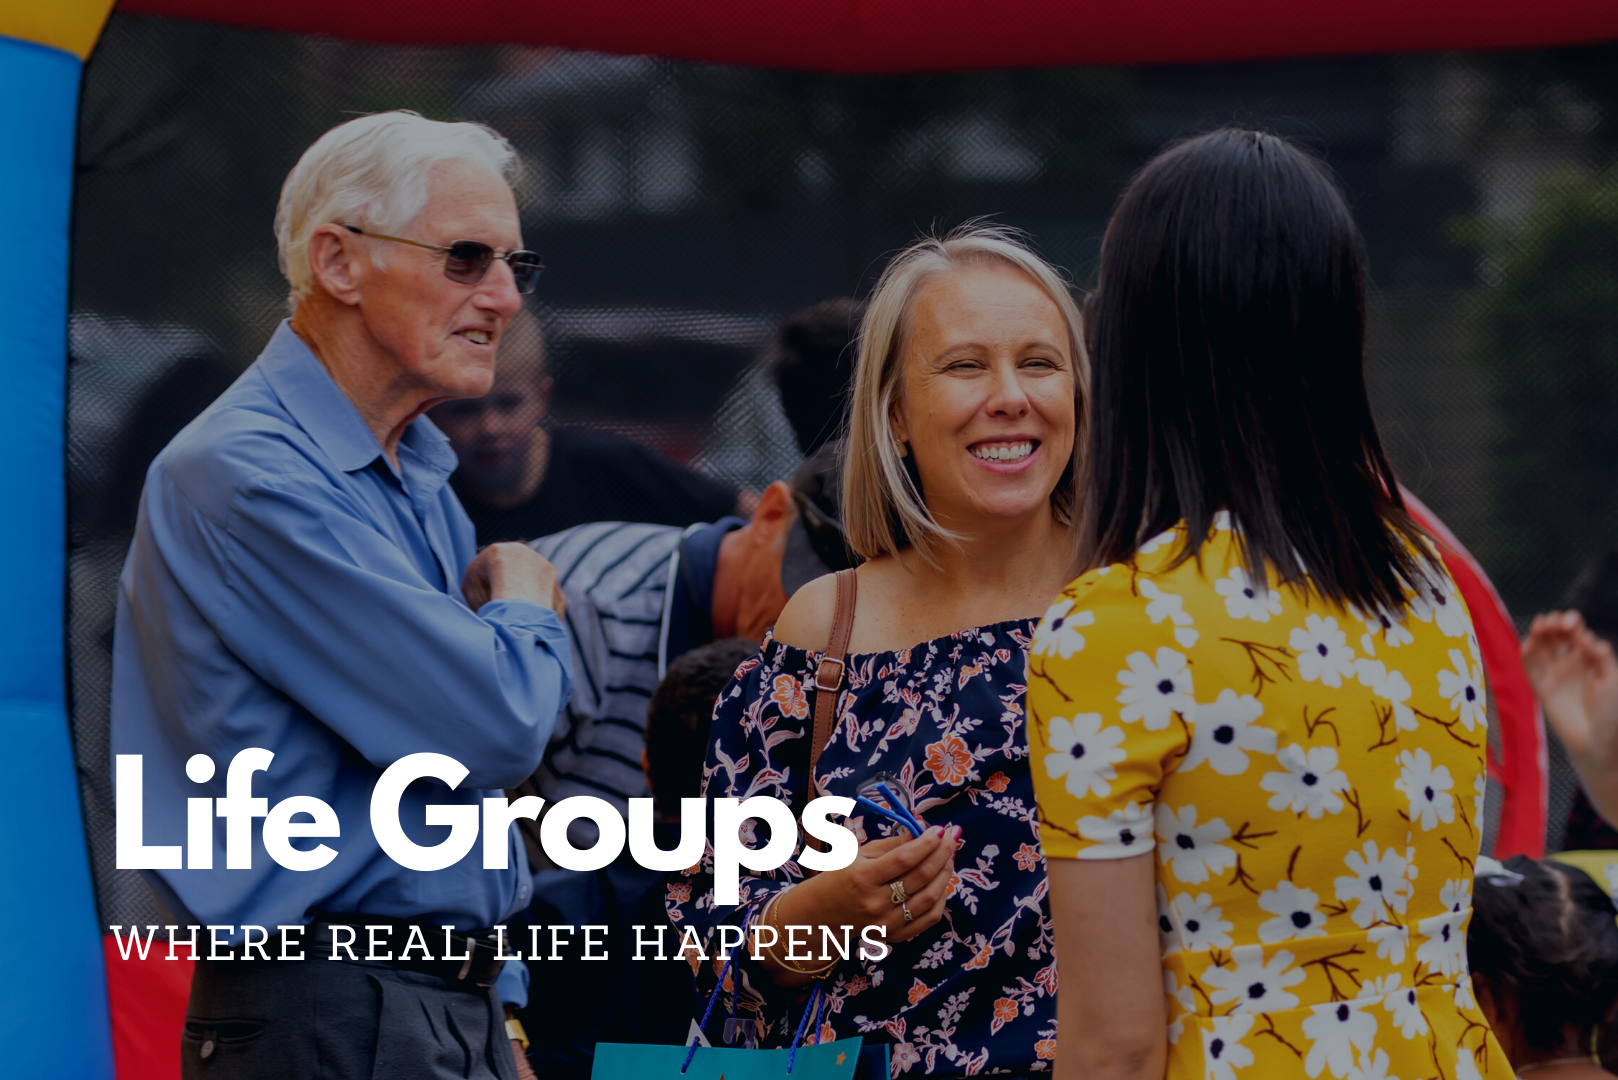 Life Groups - Where Real Life Happens